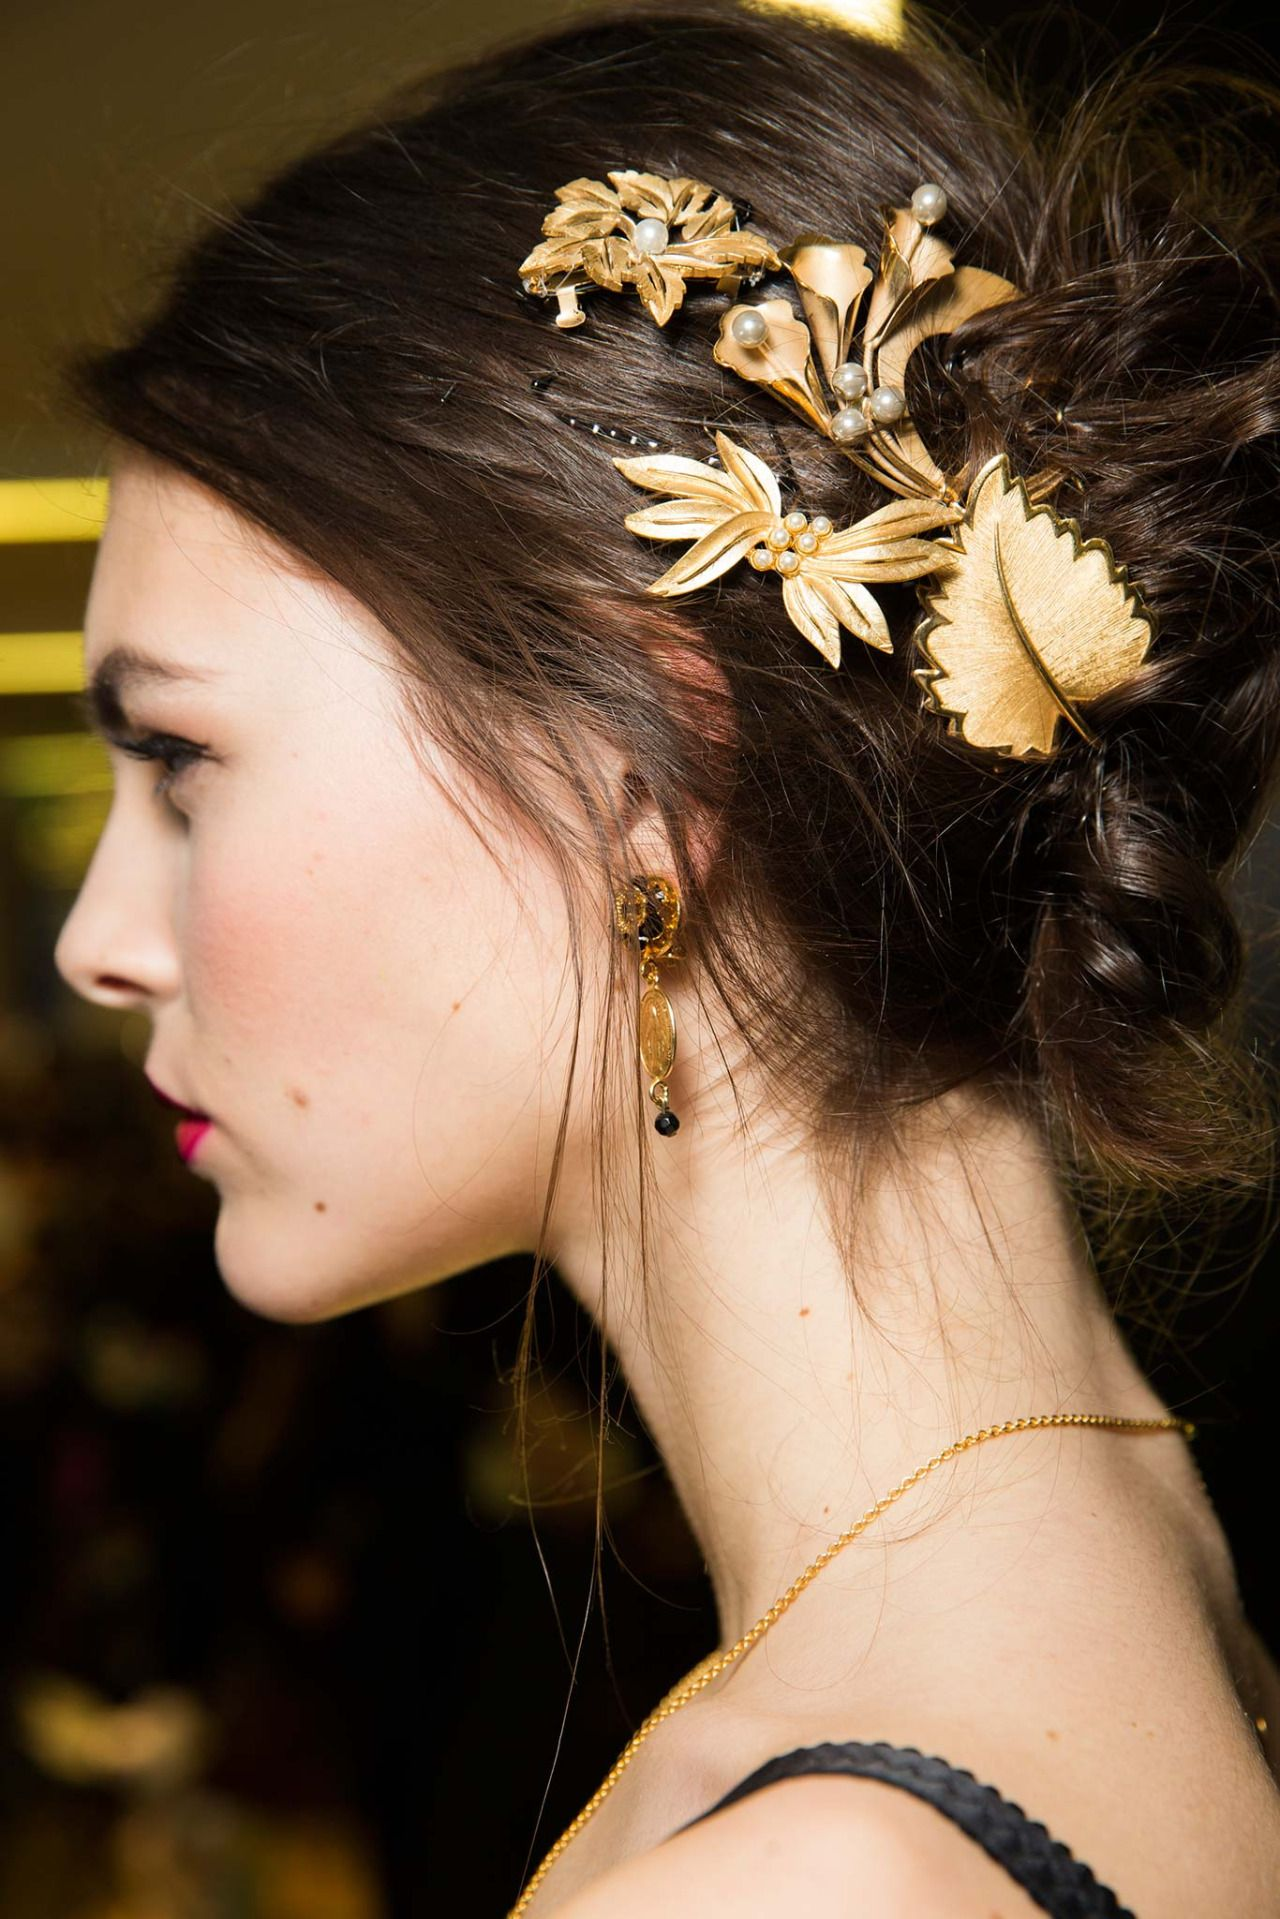 Hair at Dolce & Gabbana Fall 2015 RTW